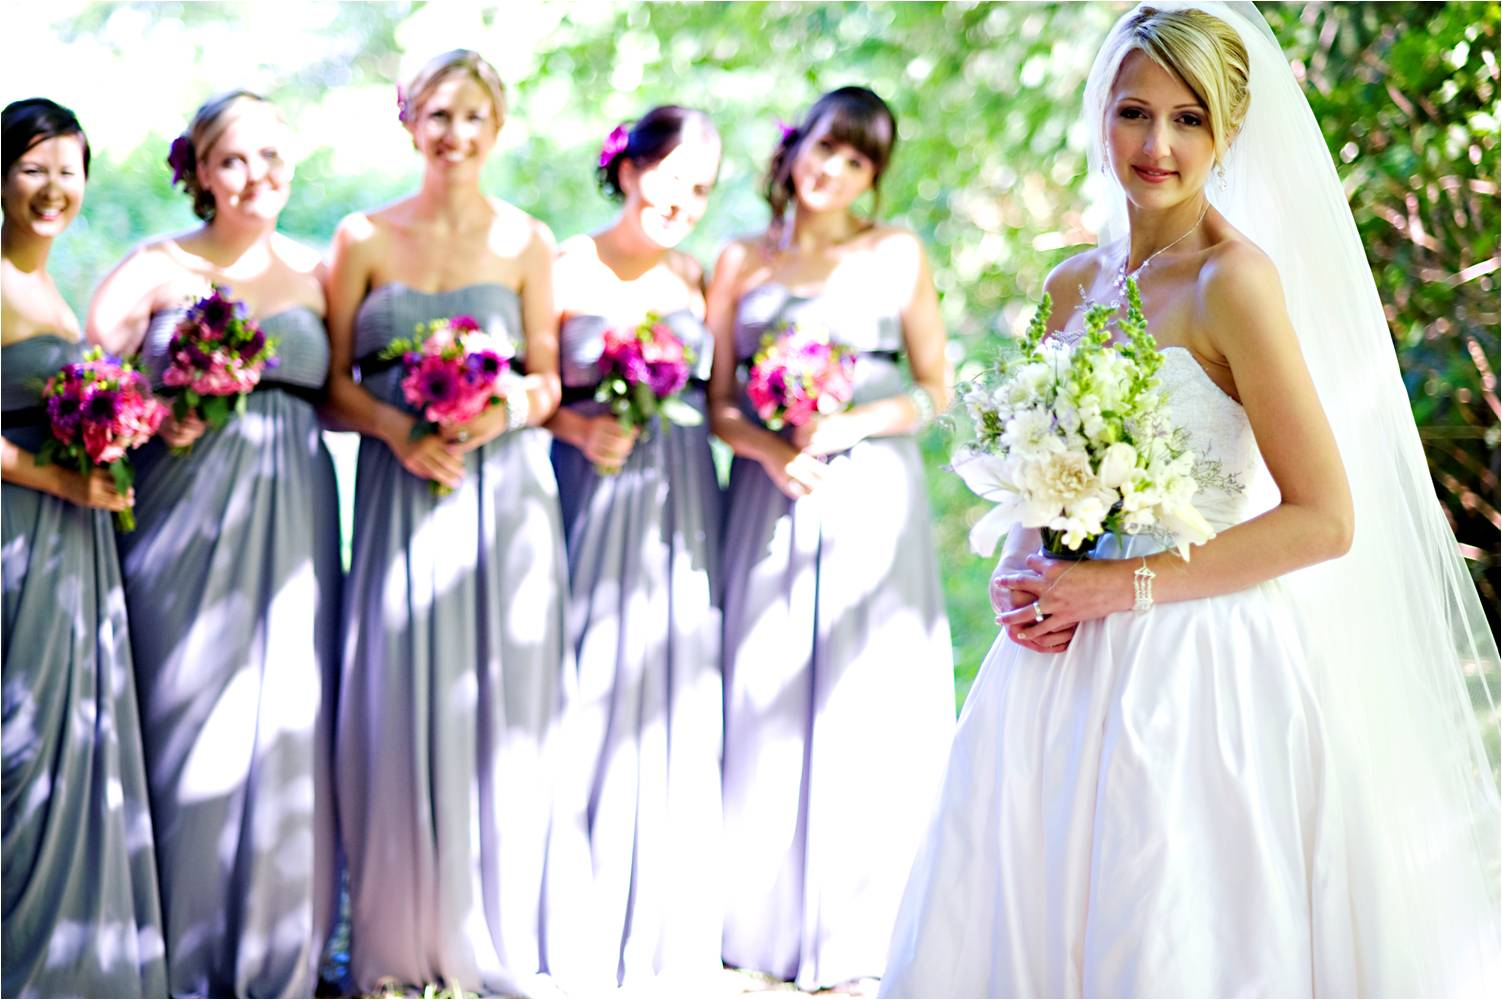 wedding decoration bridesmaid dresses for an outdoor wedding